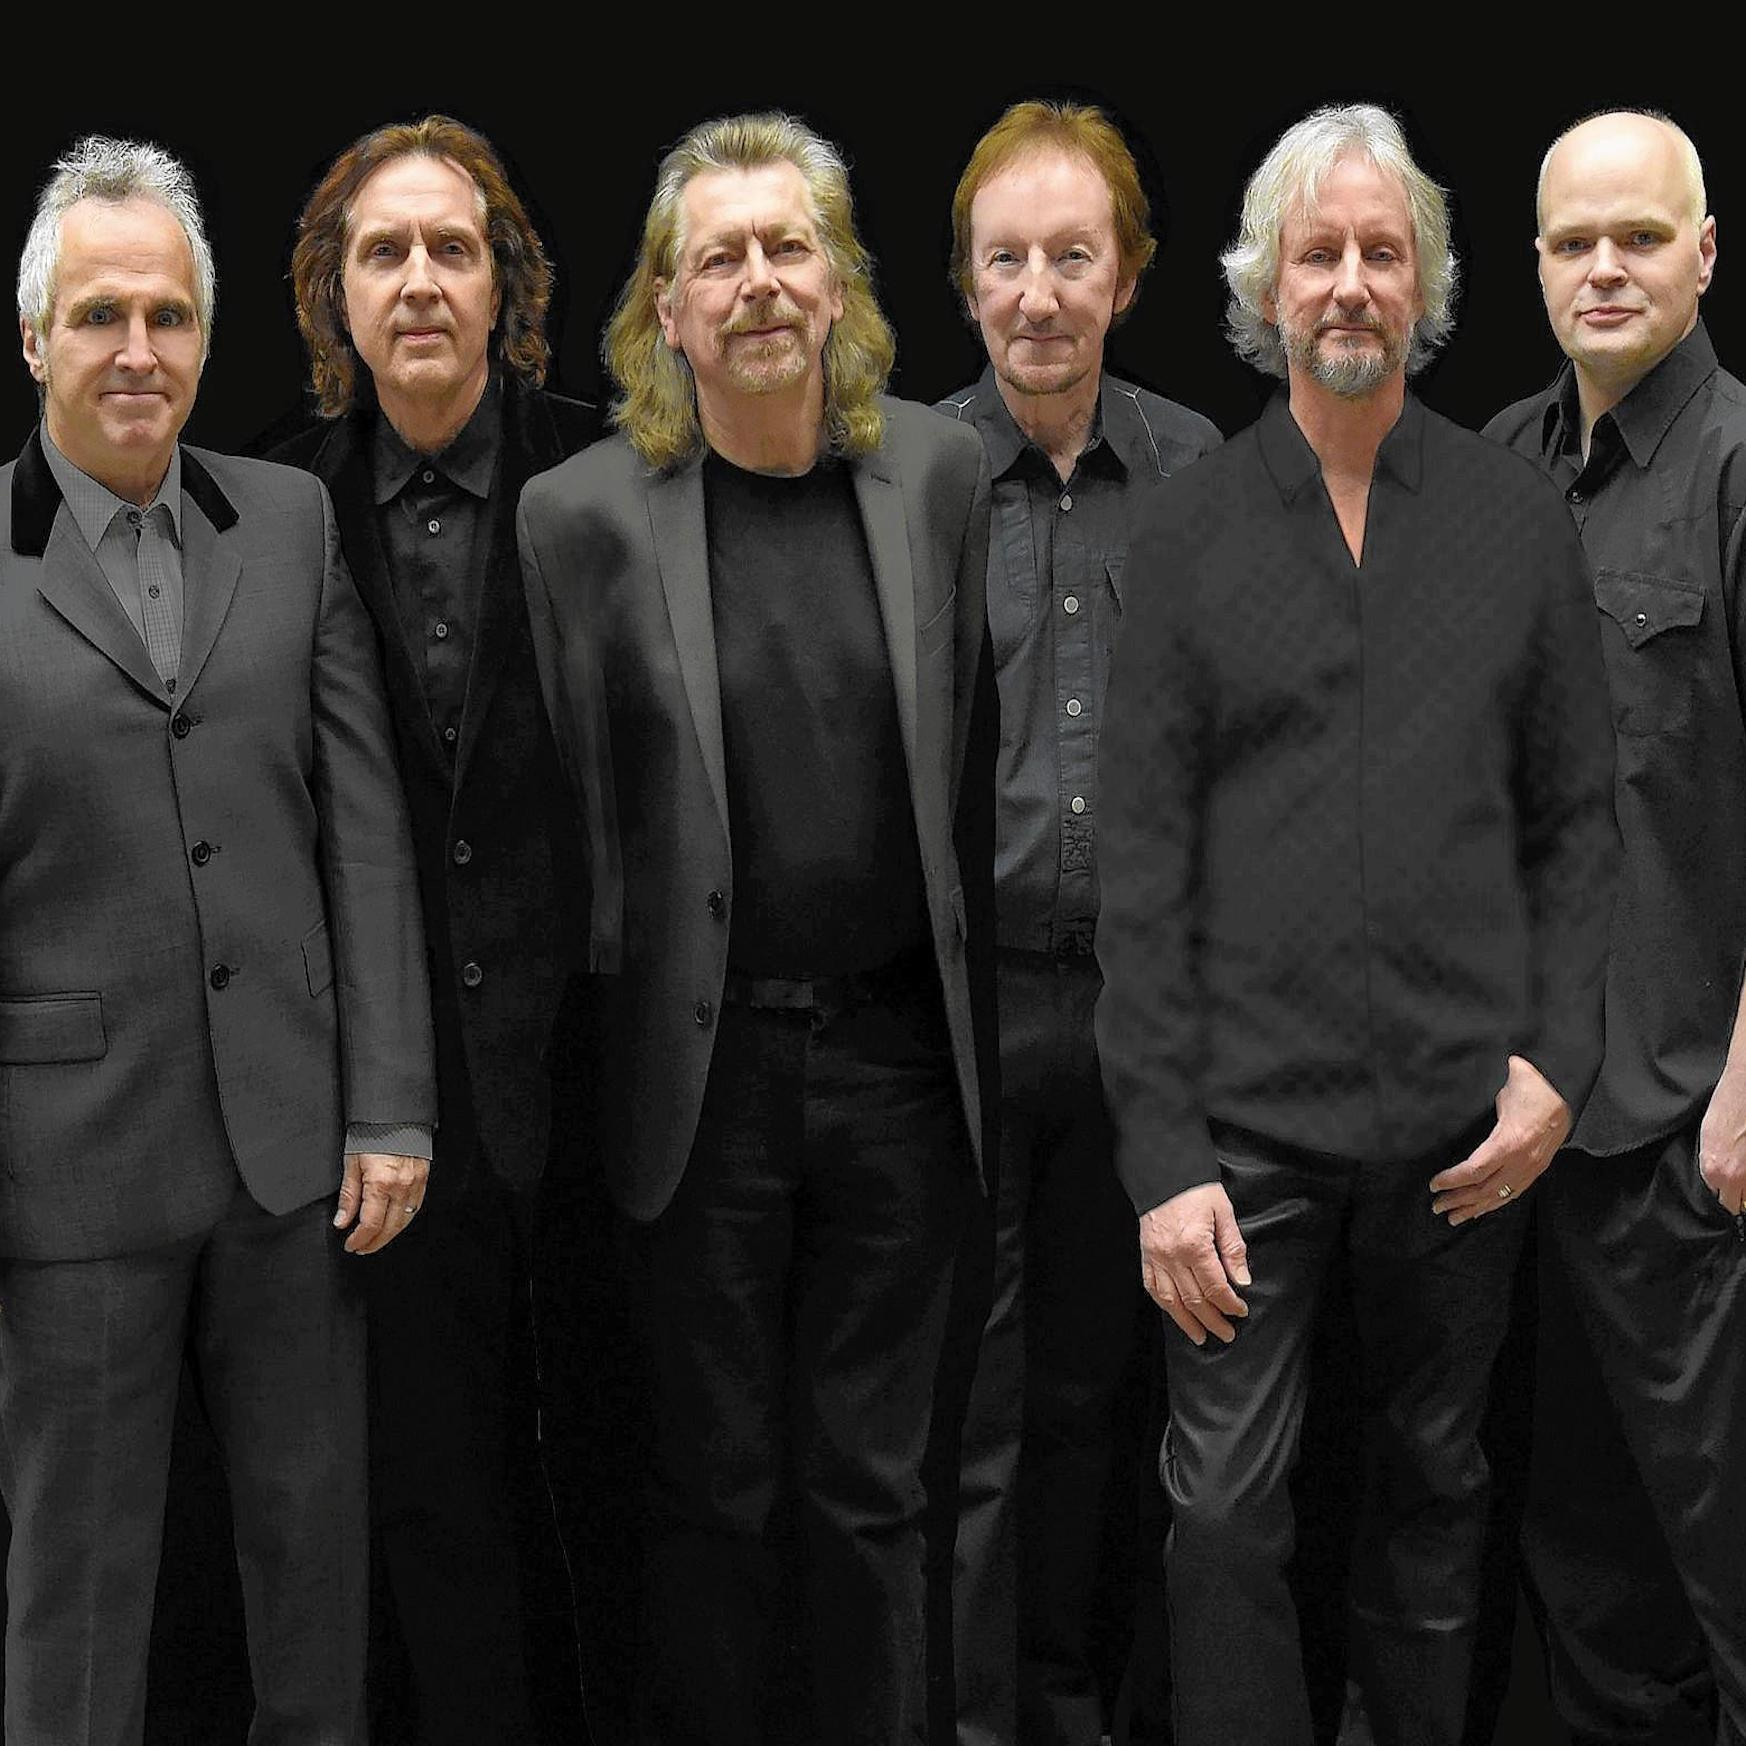 THE ORCHESTRA: Former Members of ELO -